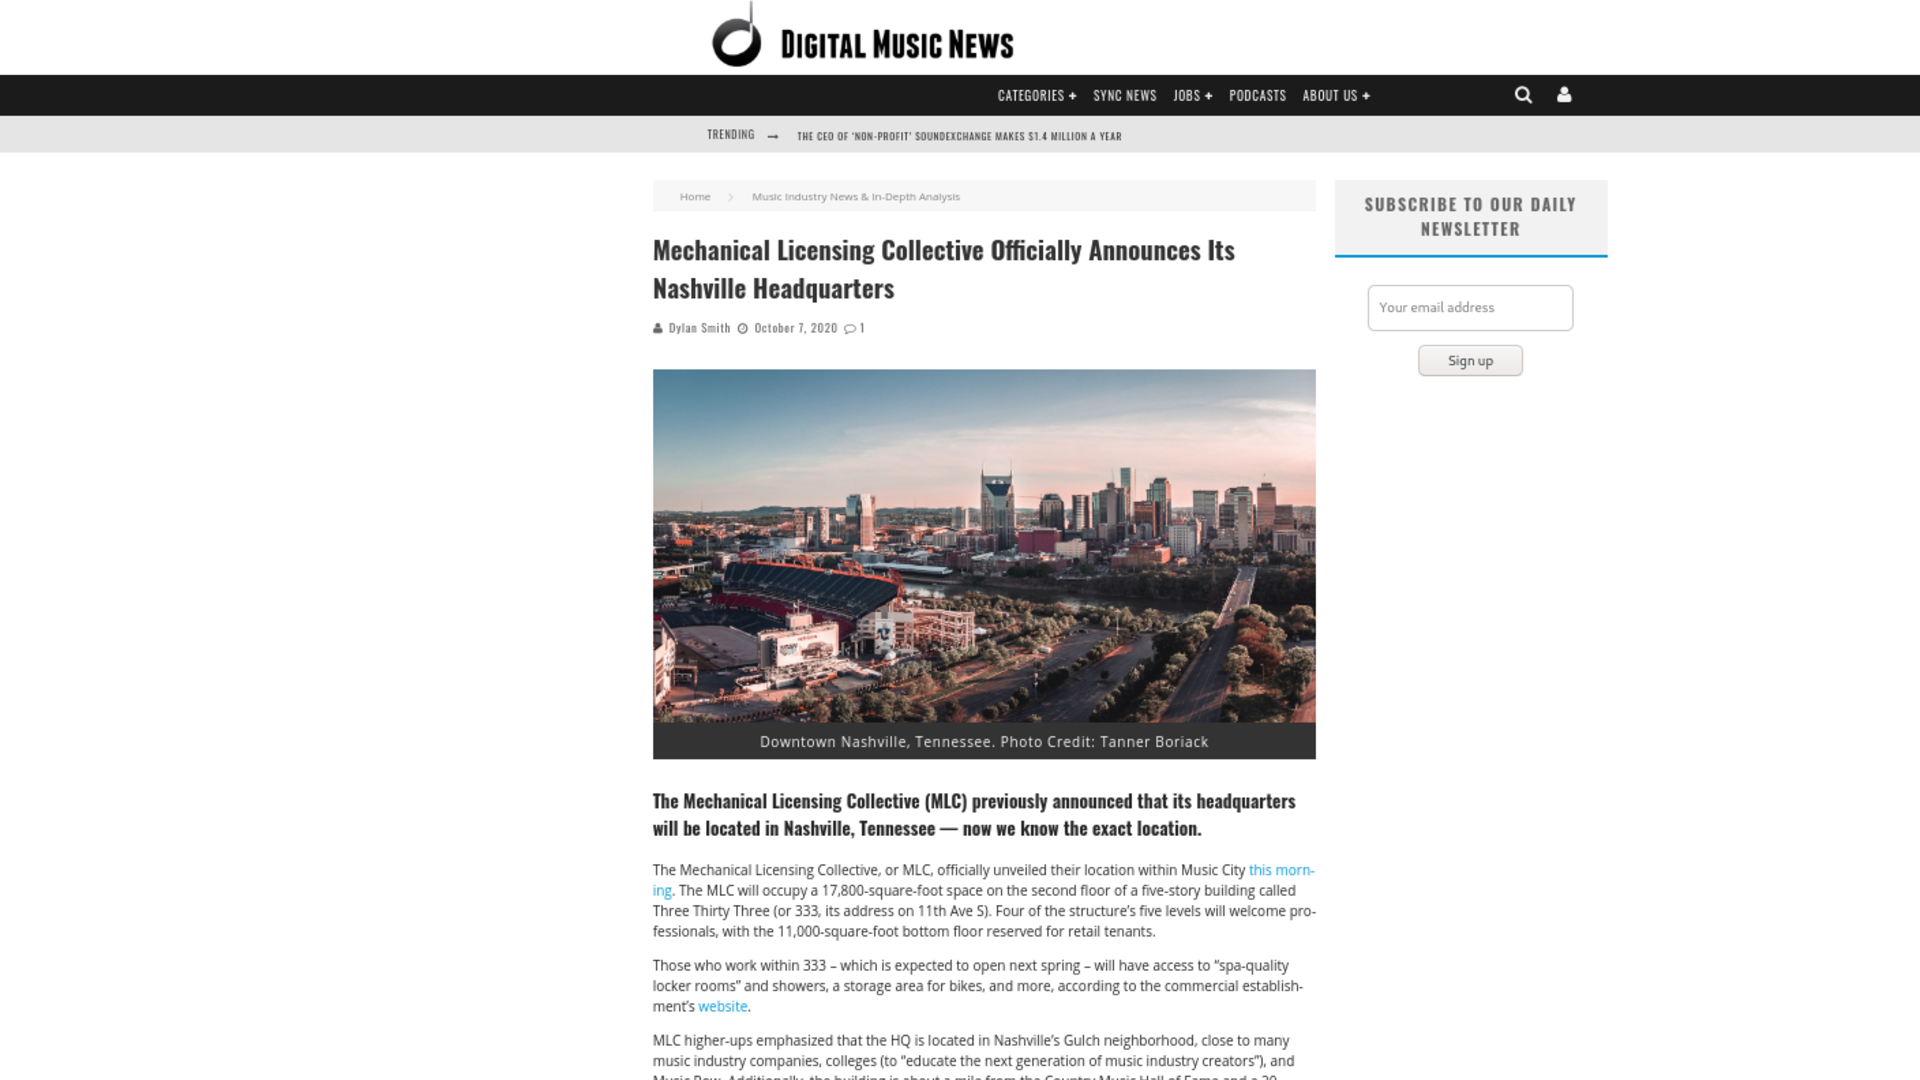 Fairness Rocks News Mechanical Licensing Collective Officially Announces Its Nashville Headquarters